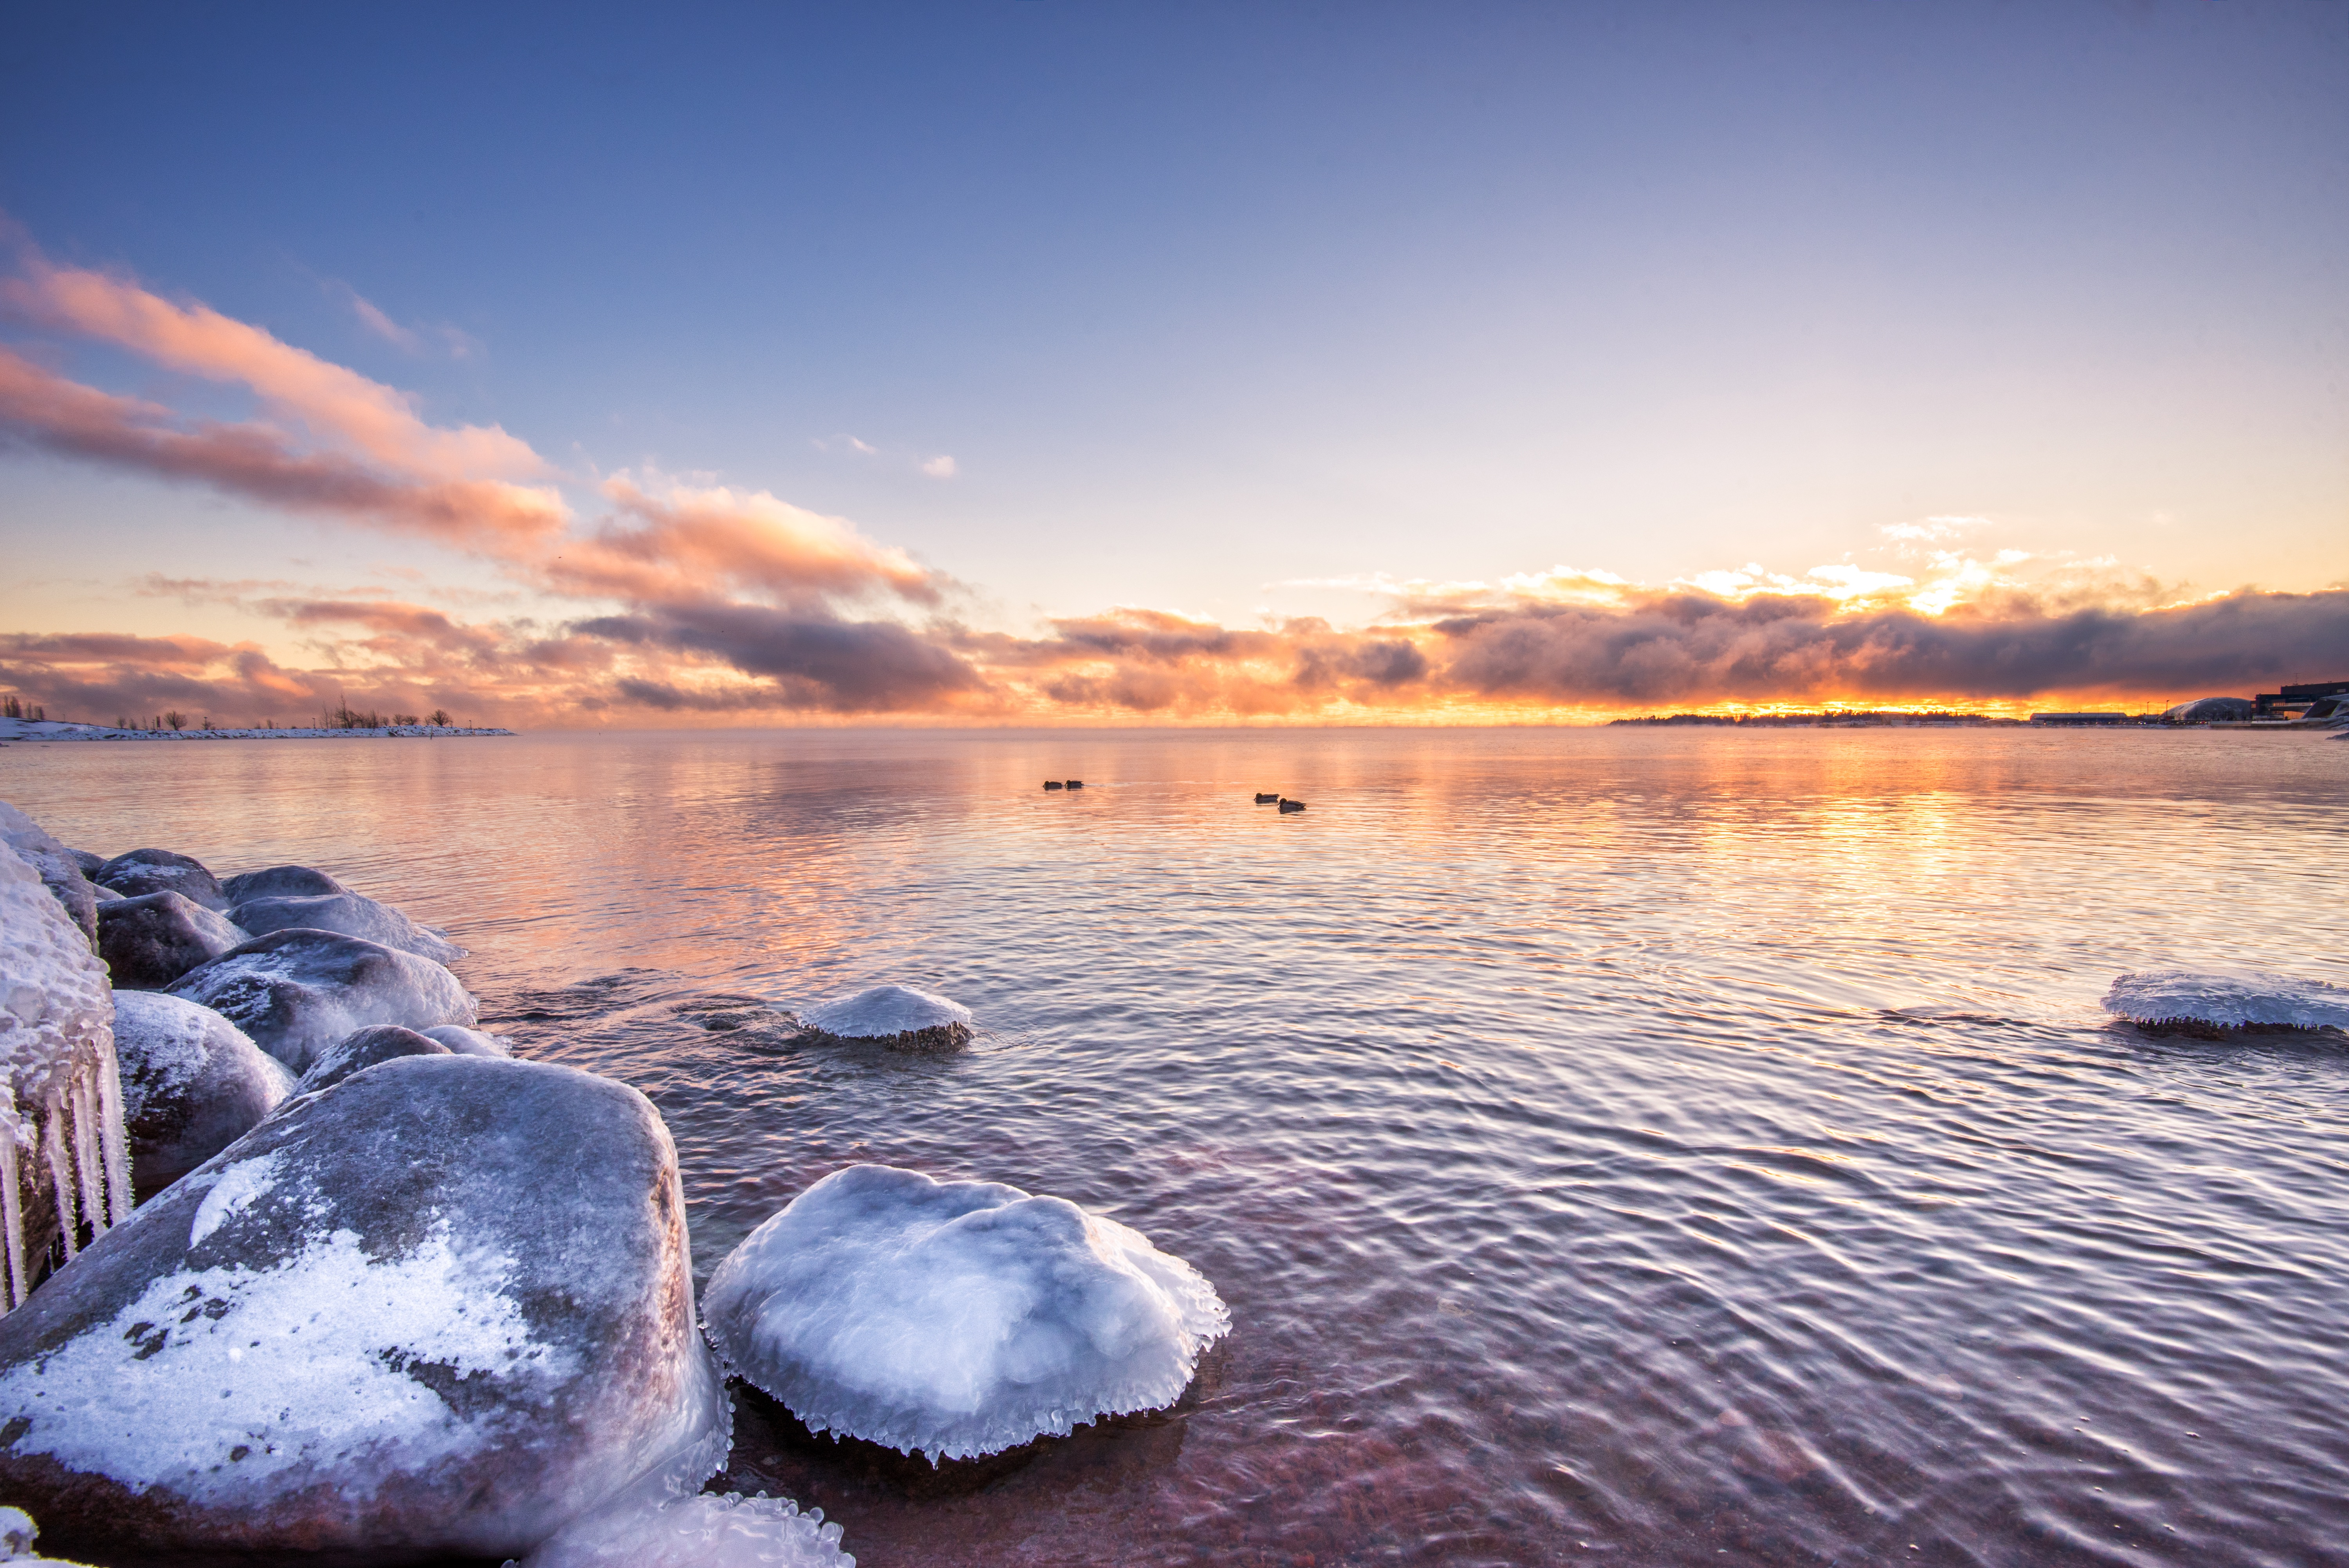 sunset-helsinki-ice-3-copie-jpg